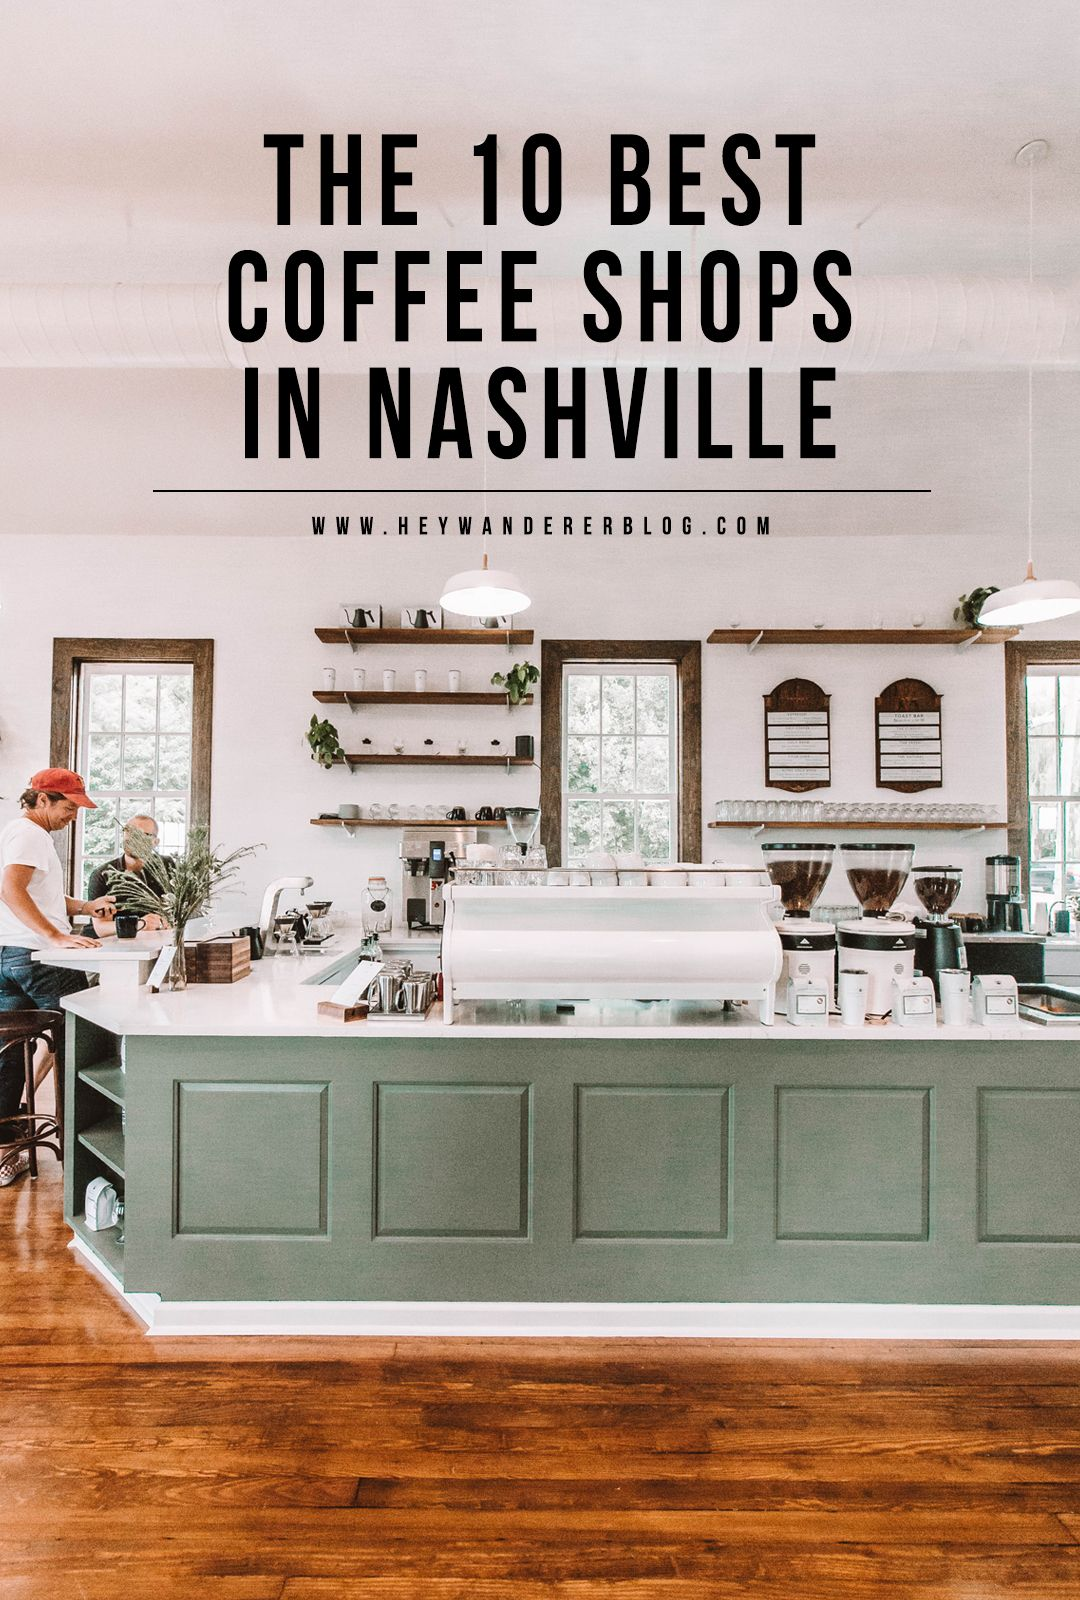 Nashville Travel Guide The 10 Best Coffee Spots Nashville Trip Nashville Travel Guide Best Coffee Shop